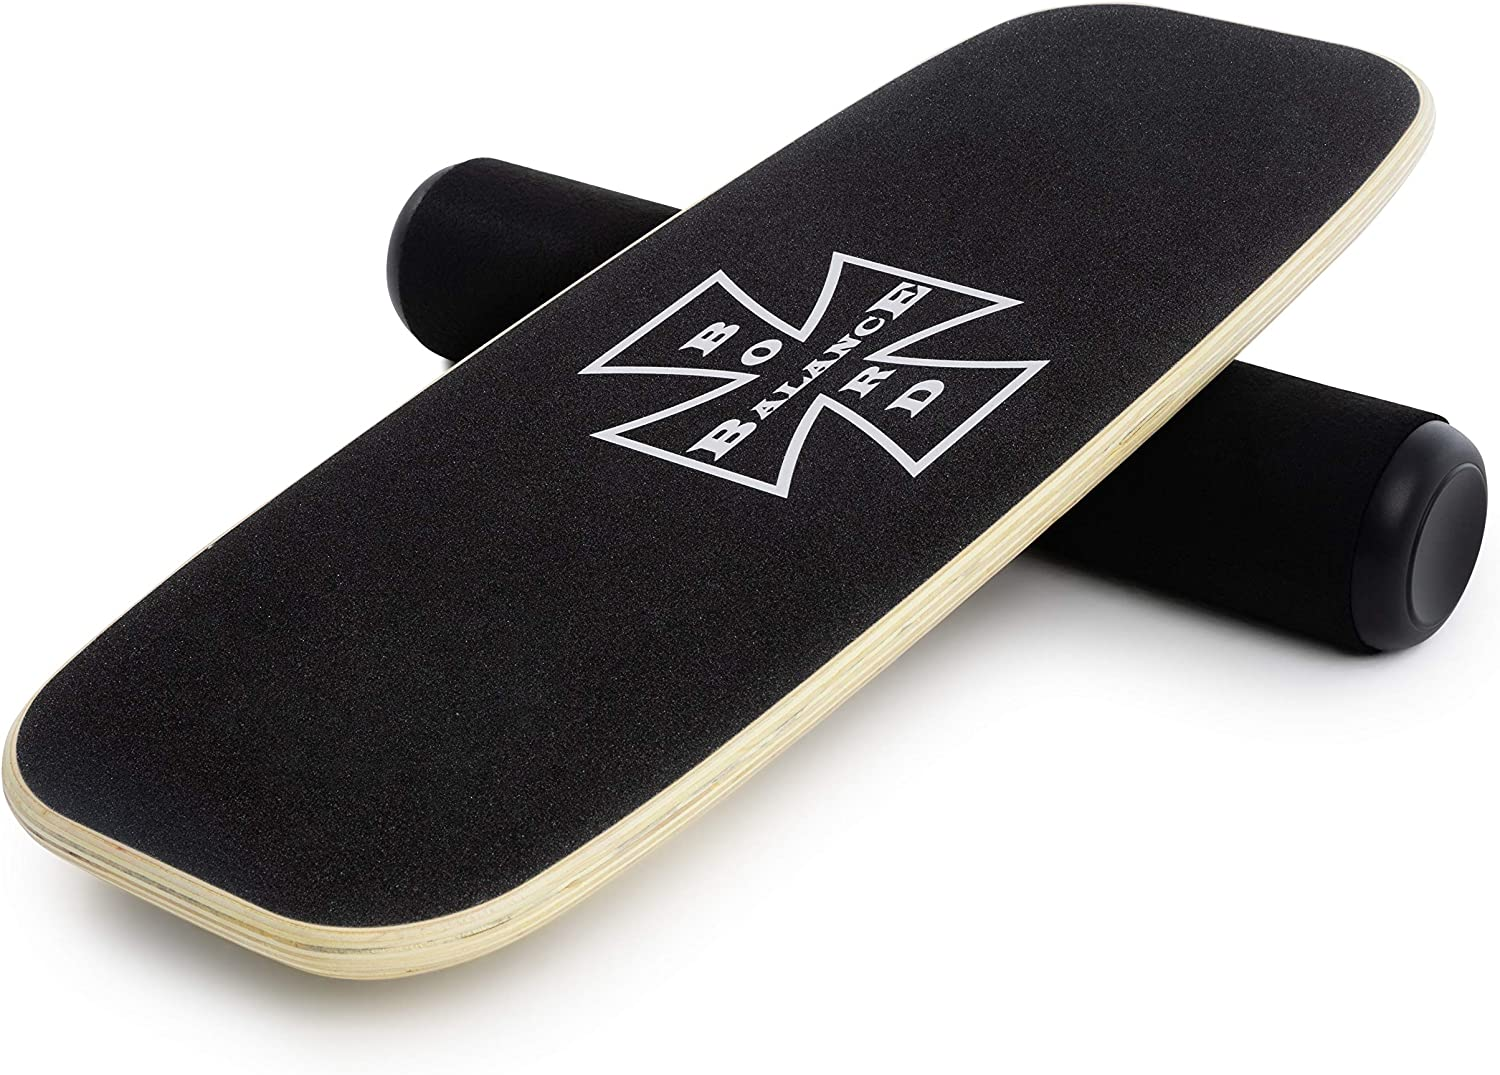 N&M Products Balance Board - Wooden Balance Trainer for Fitness, Surfing, Snowboarding, Skateboarding and Exercise